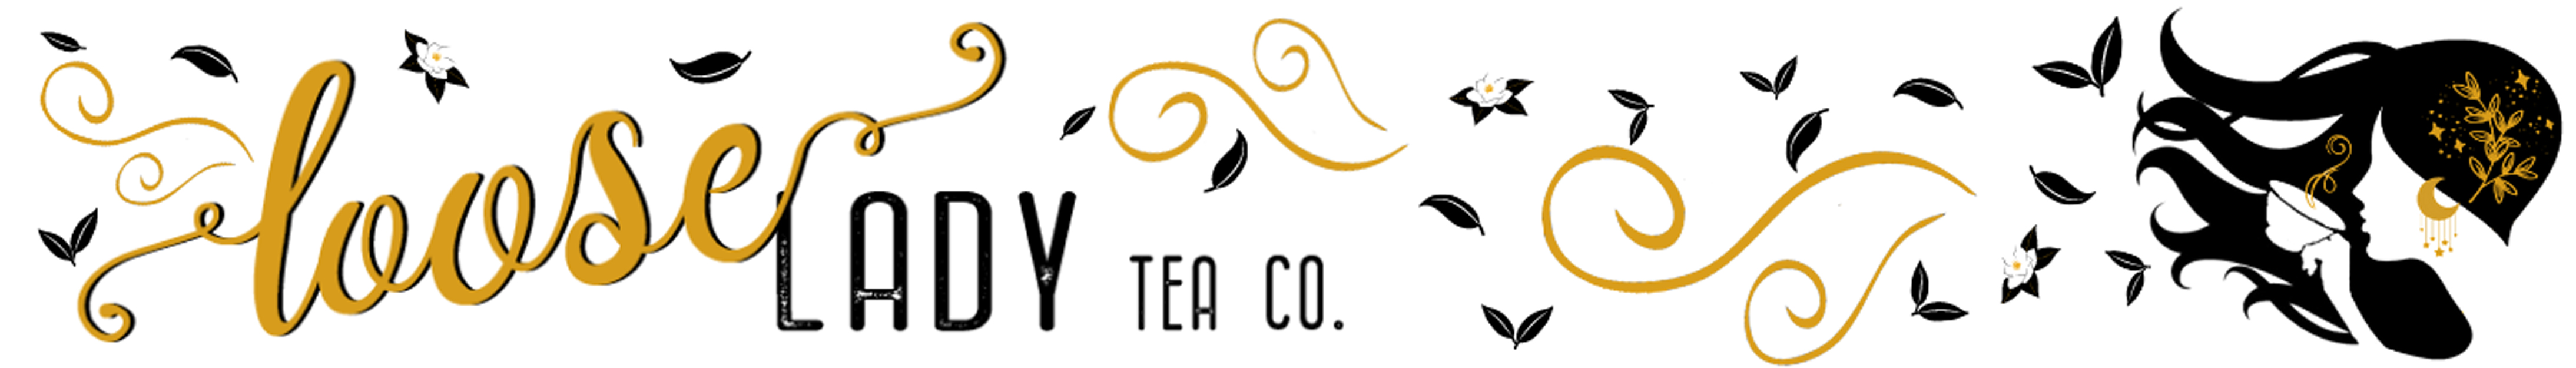 Loose Lady Tea Co